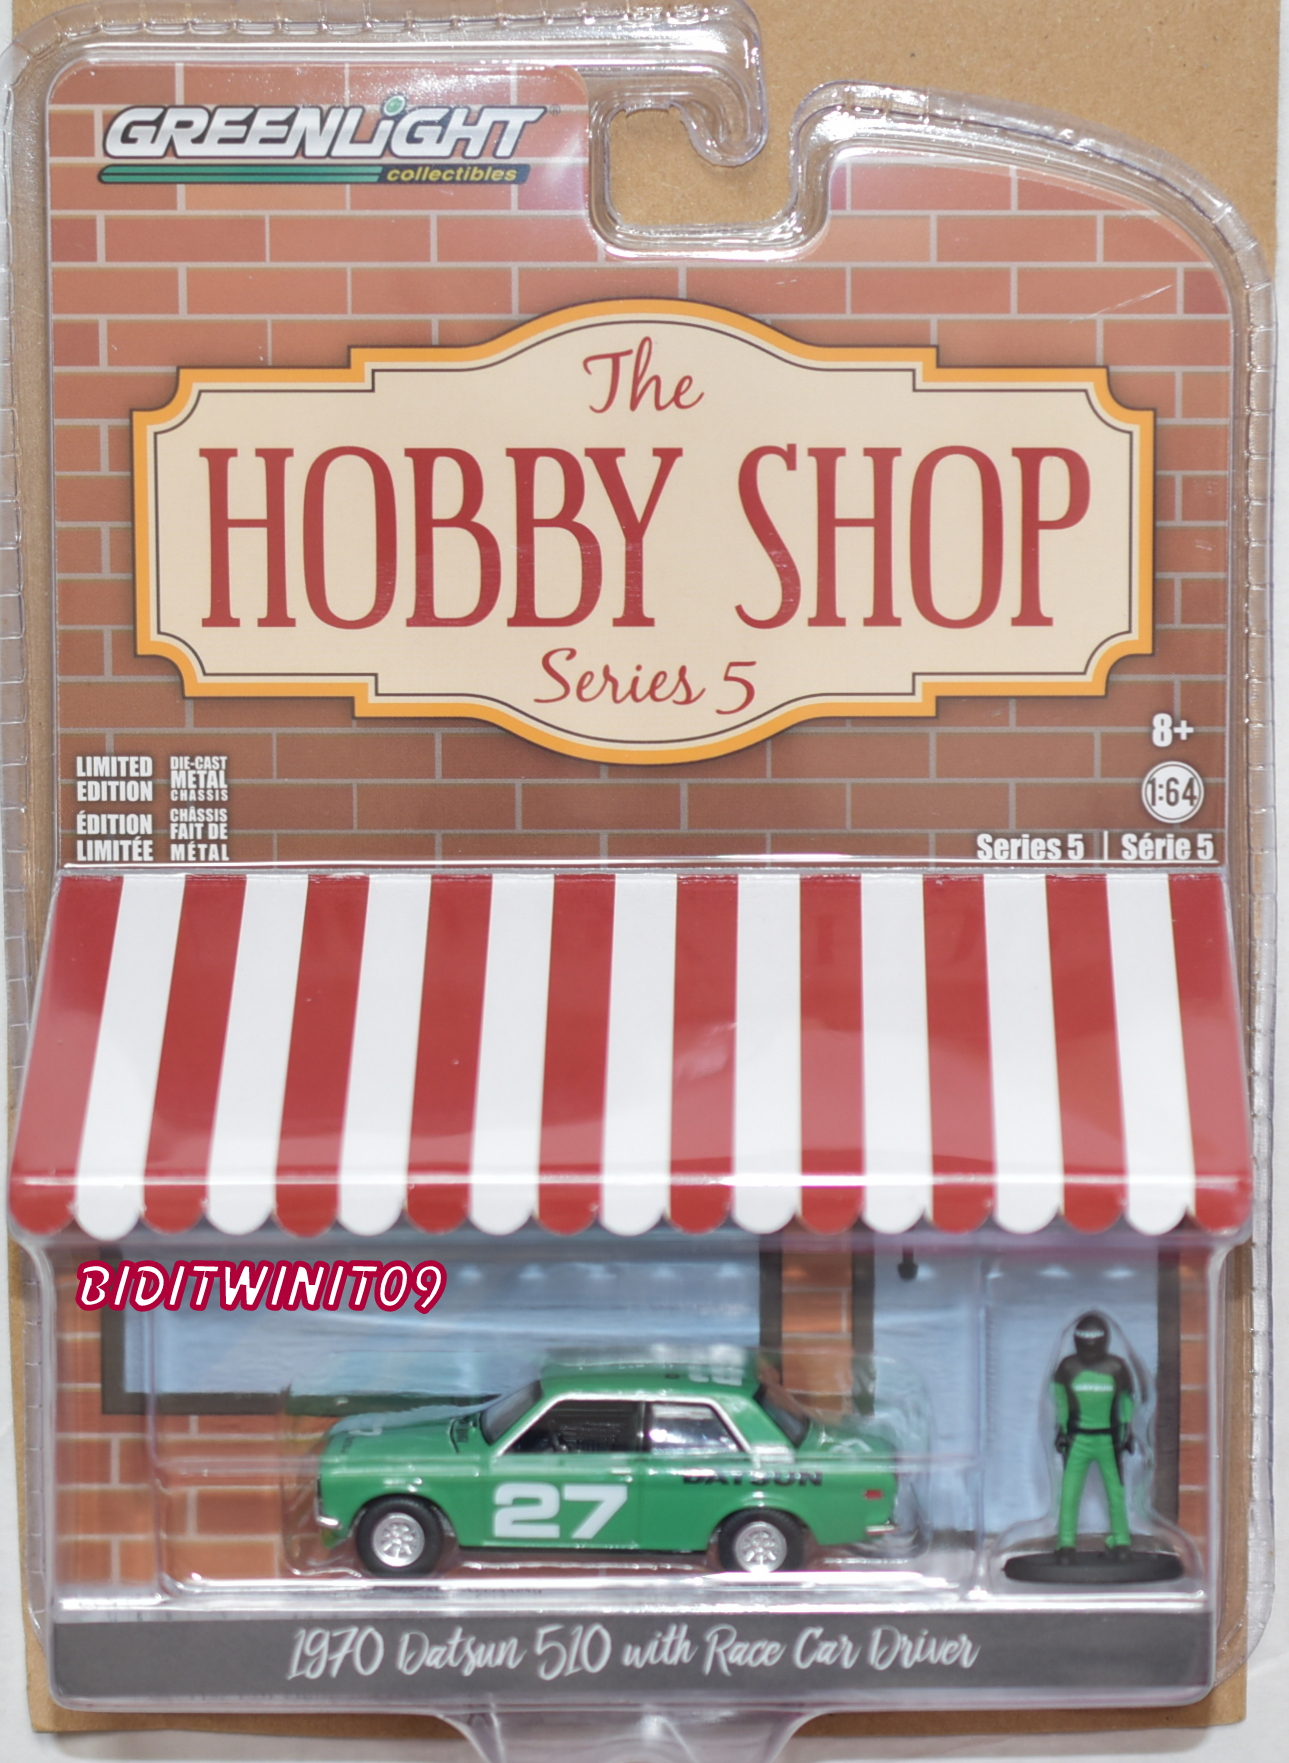 GREENLIGHT HOBBY SHOP SERIES 5 1970 DATSUN 510 WITH RACE CAR DRIVER